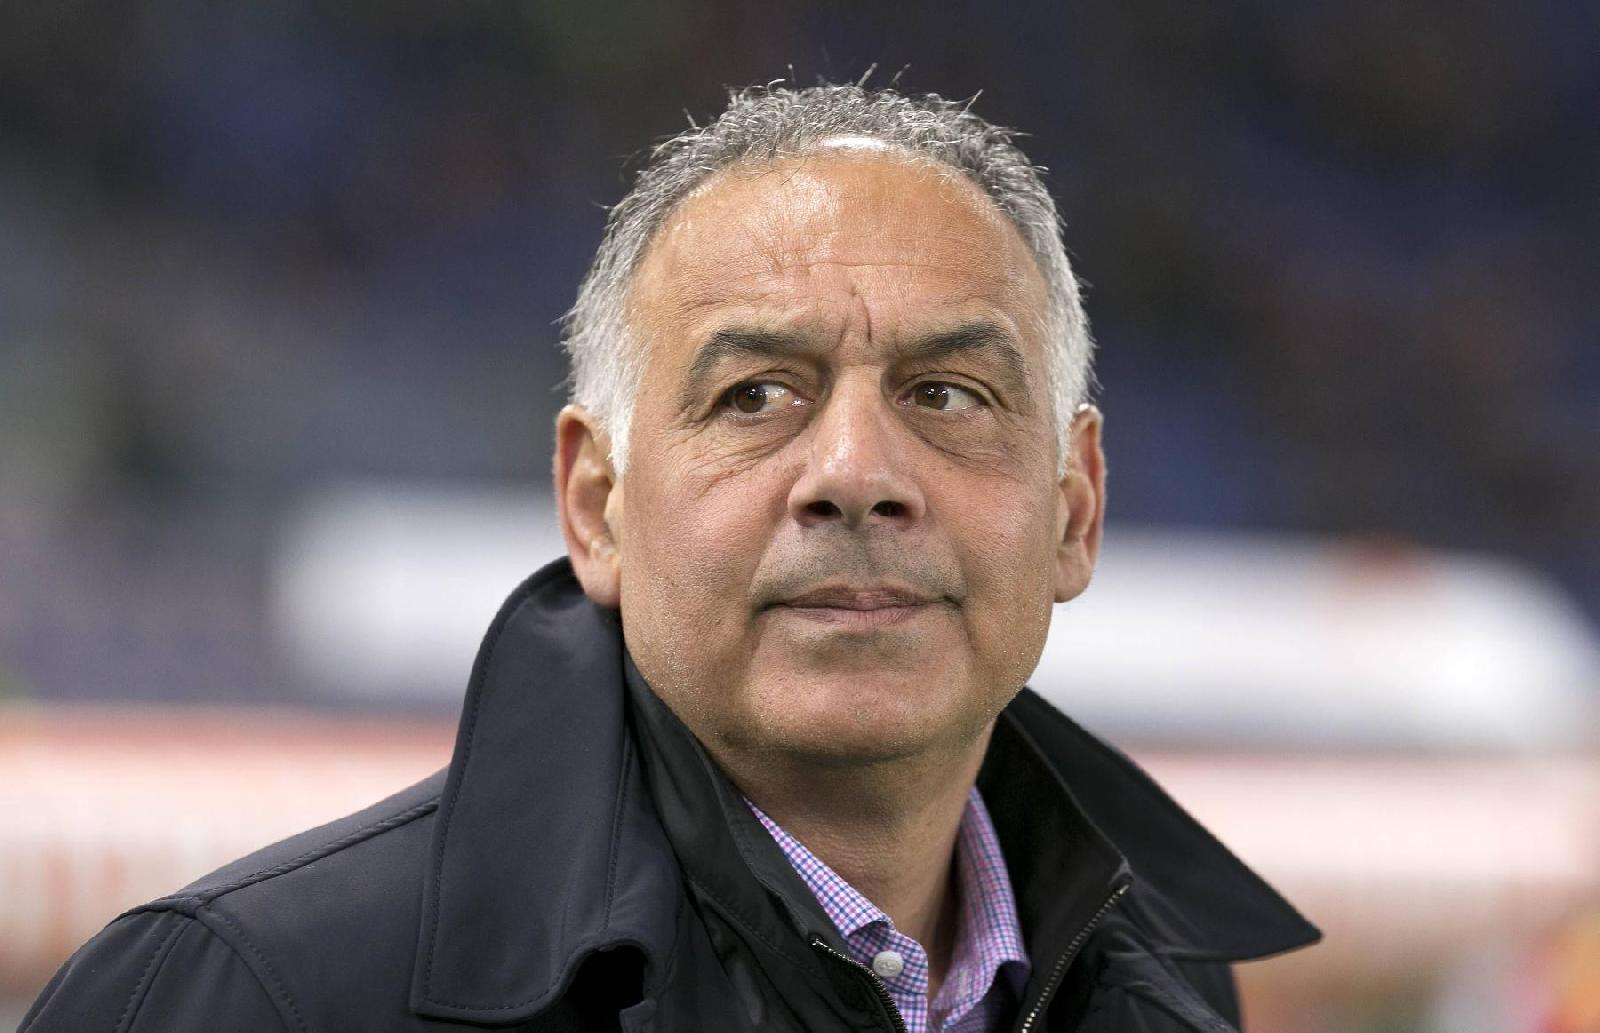 Roma, a Boston Pallotta è pronto a rilanciare per lo Stadio